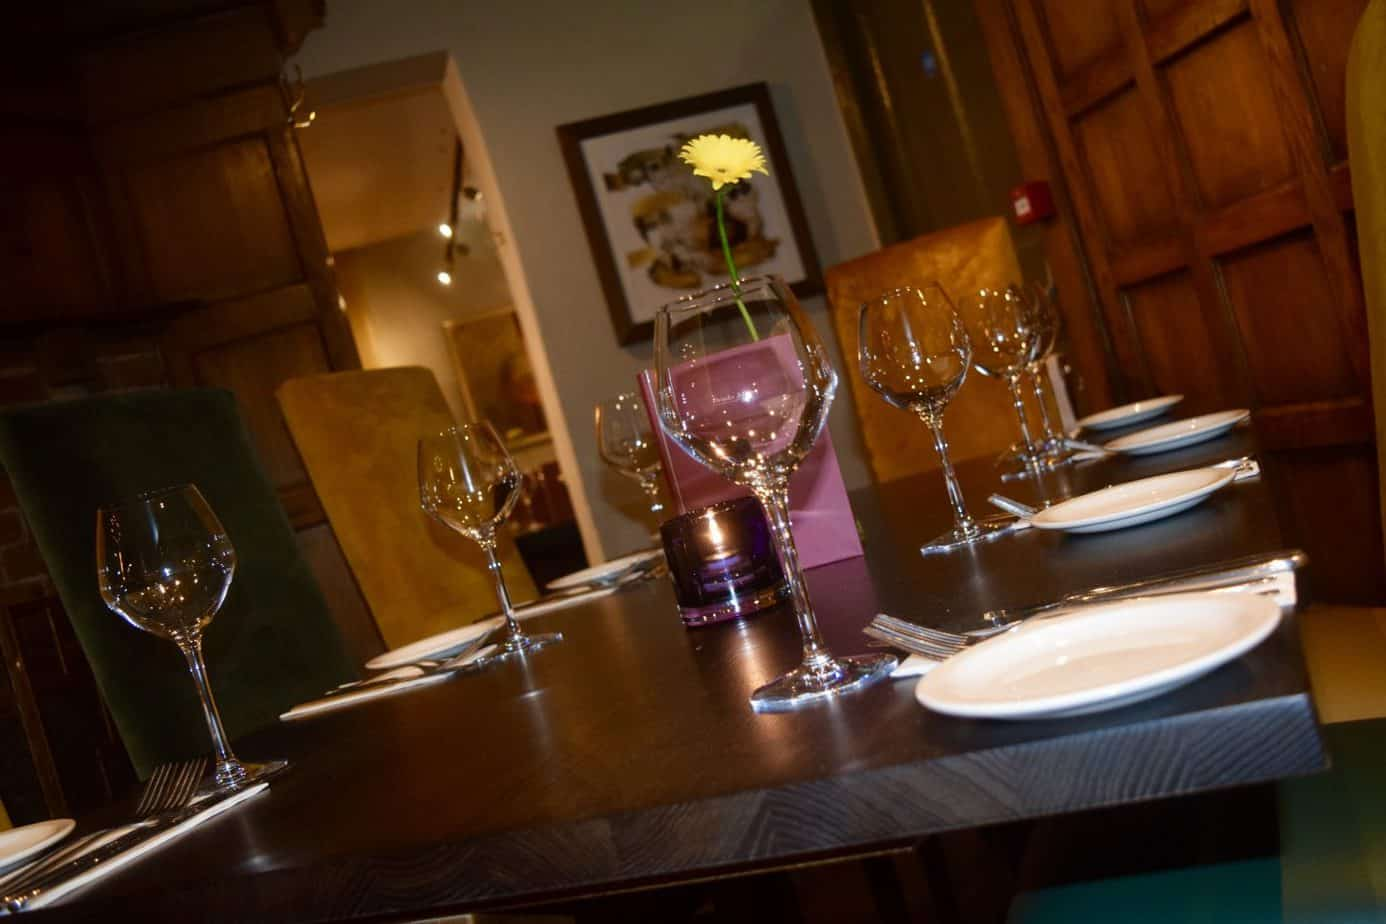 A close up of a table with wine glasses at The Bulls Head in Meriden